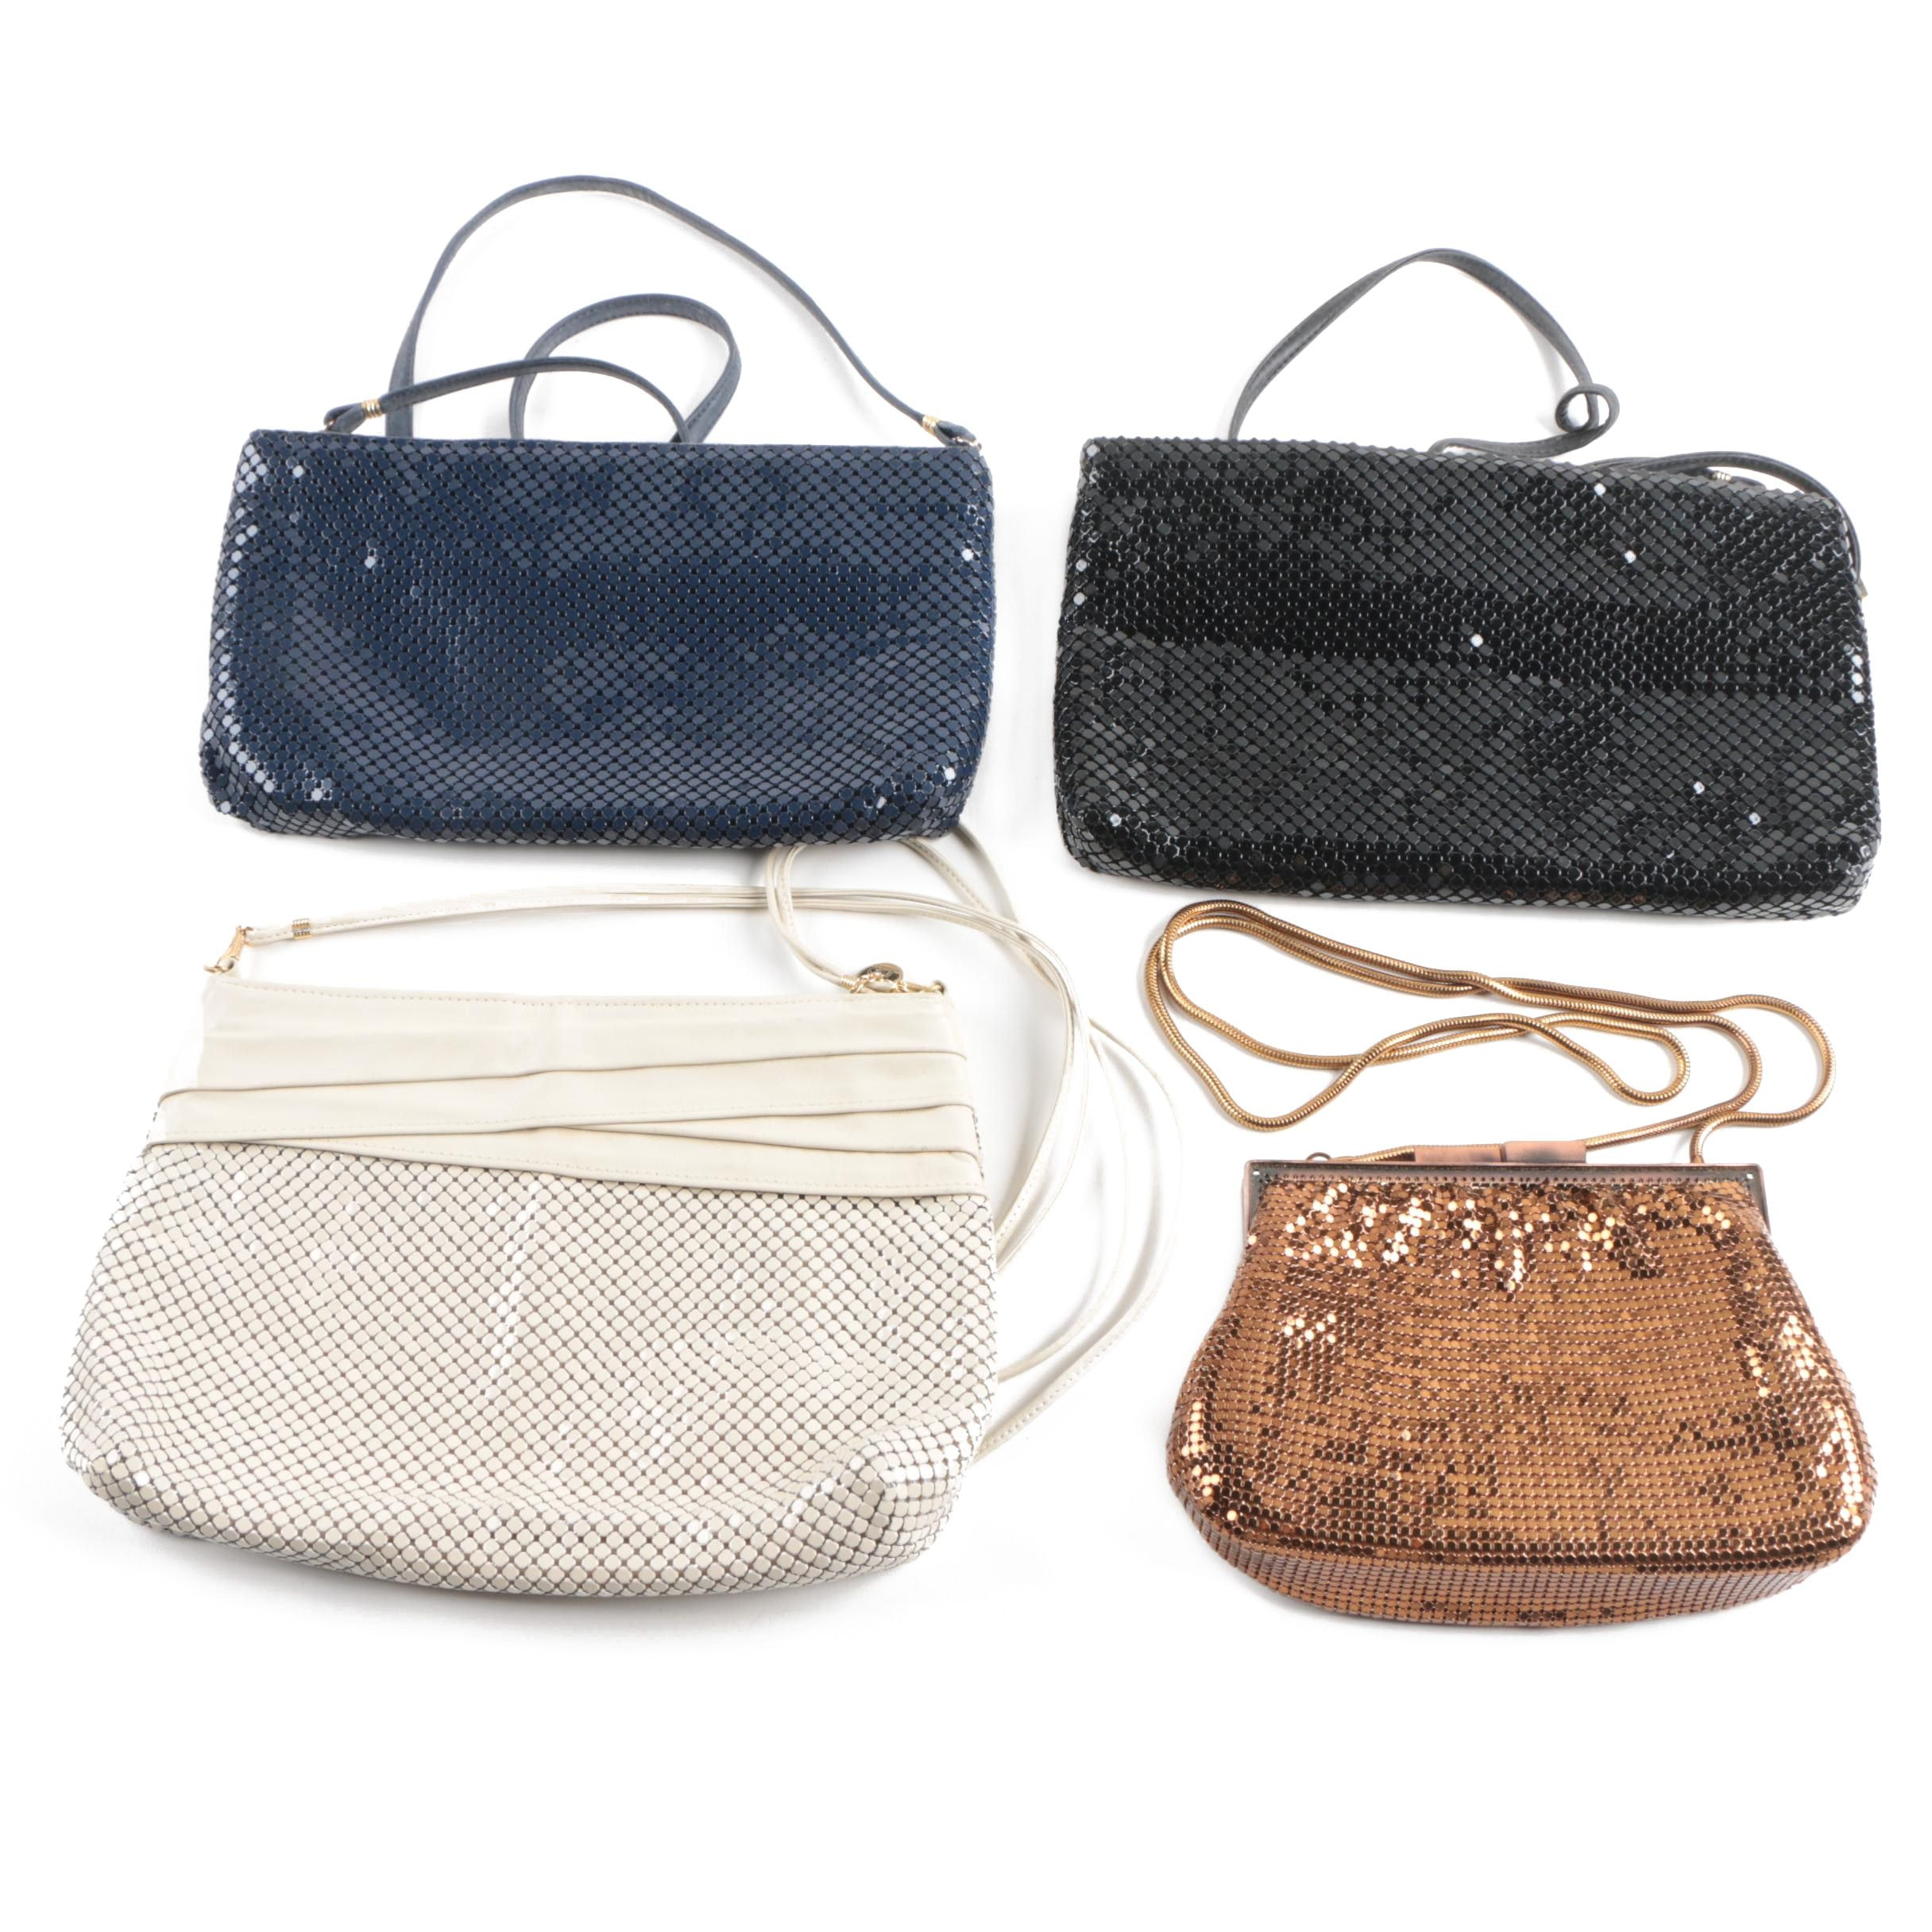 Whiting and Davis and La Regale Mesh Handbags